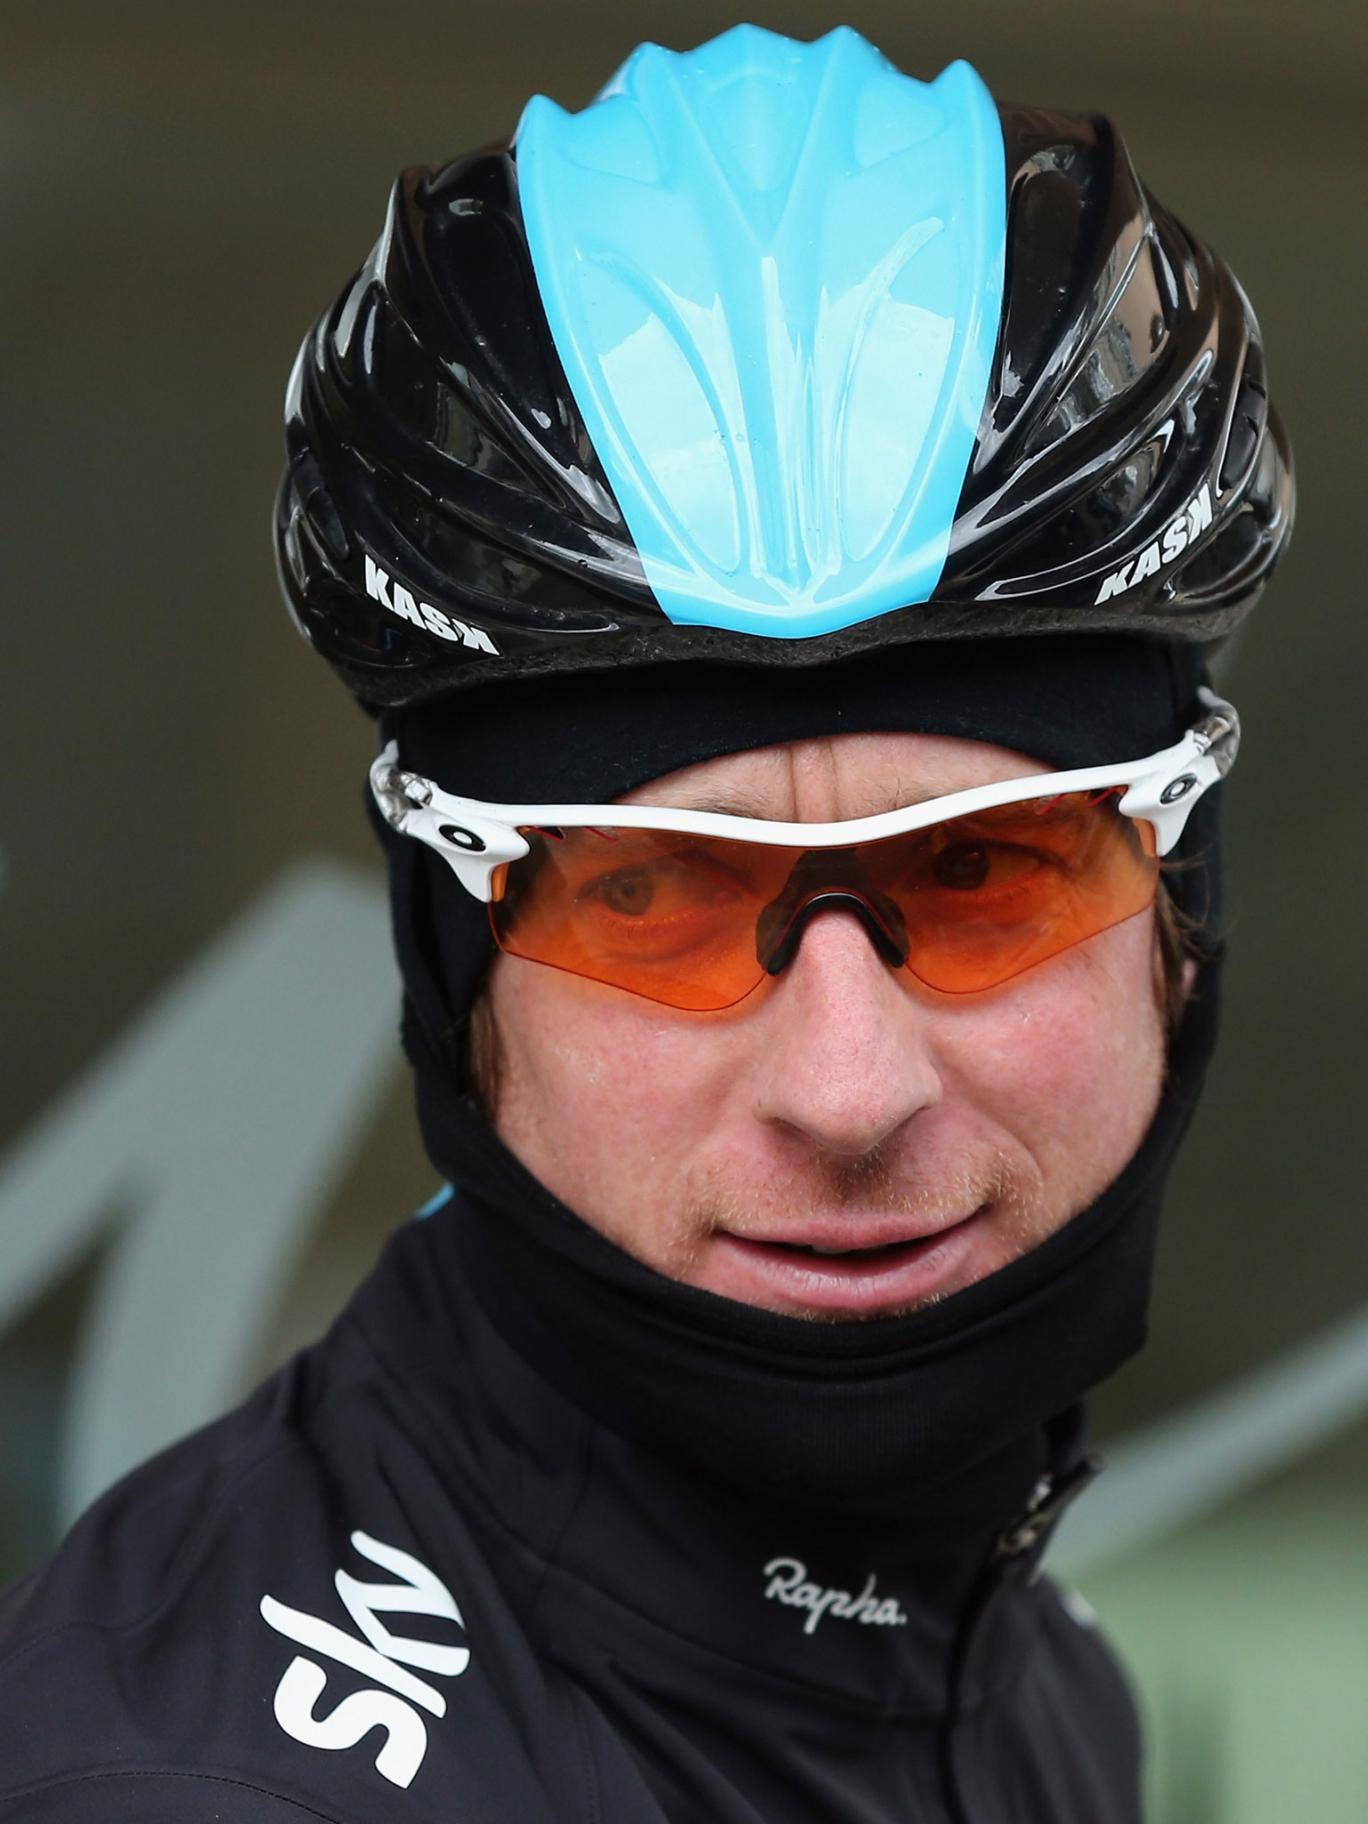 Giro Check: Although he will be reluctant to admit it, Wiggins has his eye on history